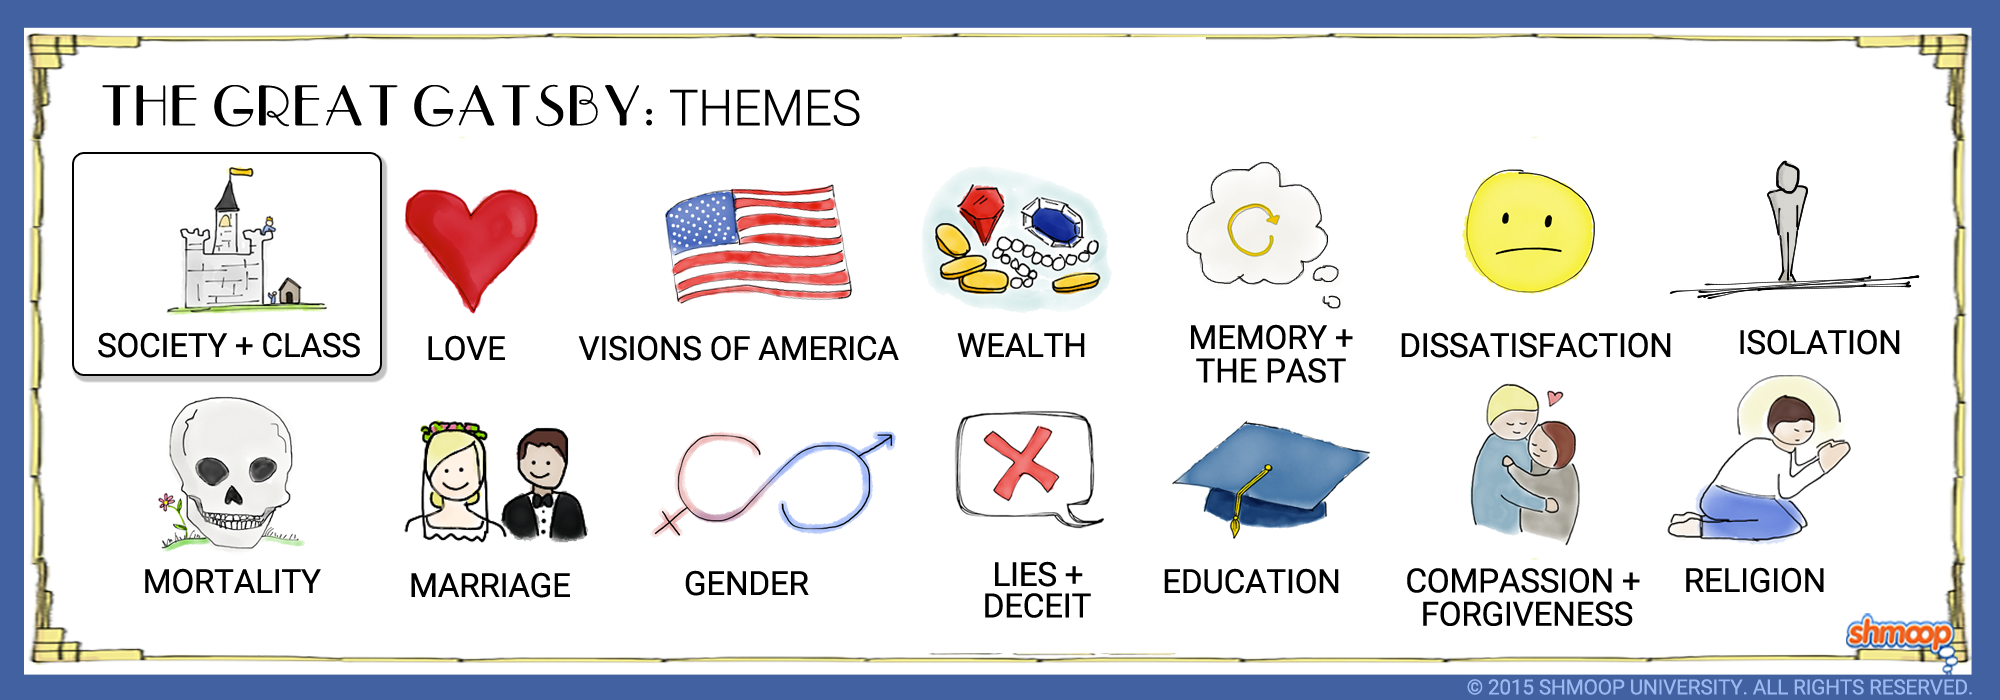 thesis statements for the great gatsby american dream American dream essay thesis  great gatsby american dream thesis statements american dream great gatsby thesis  videoprÄsentationen news & termine.